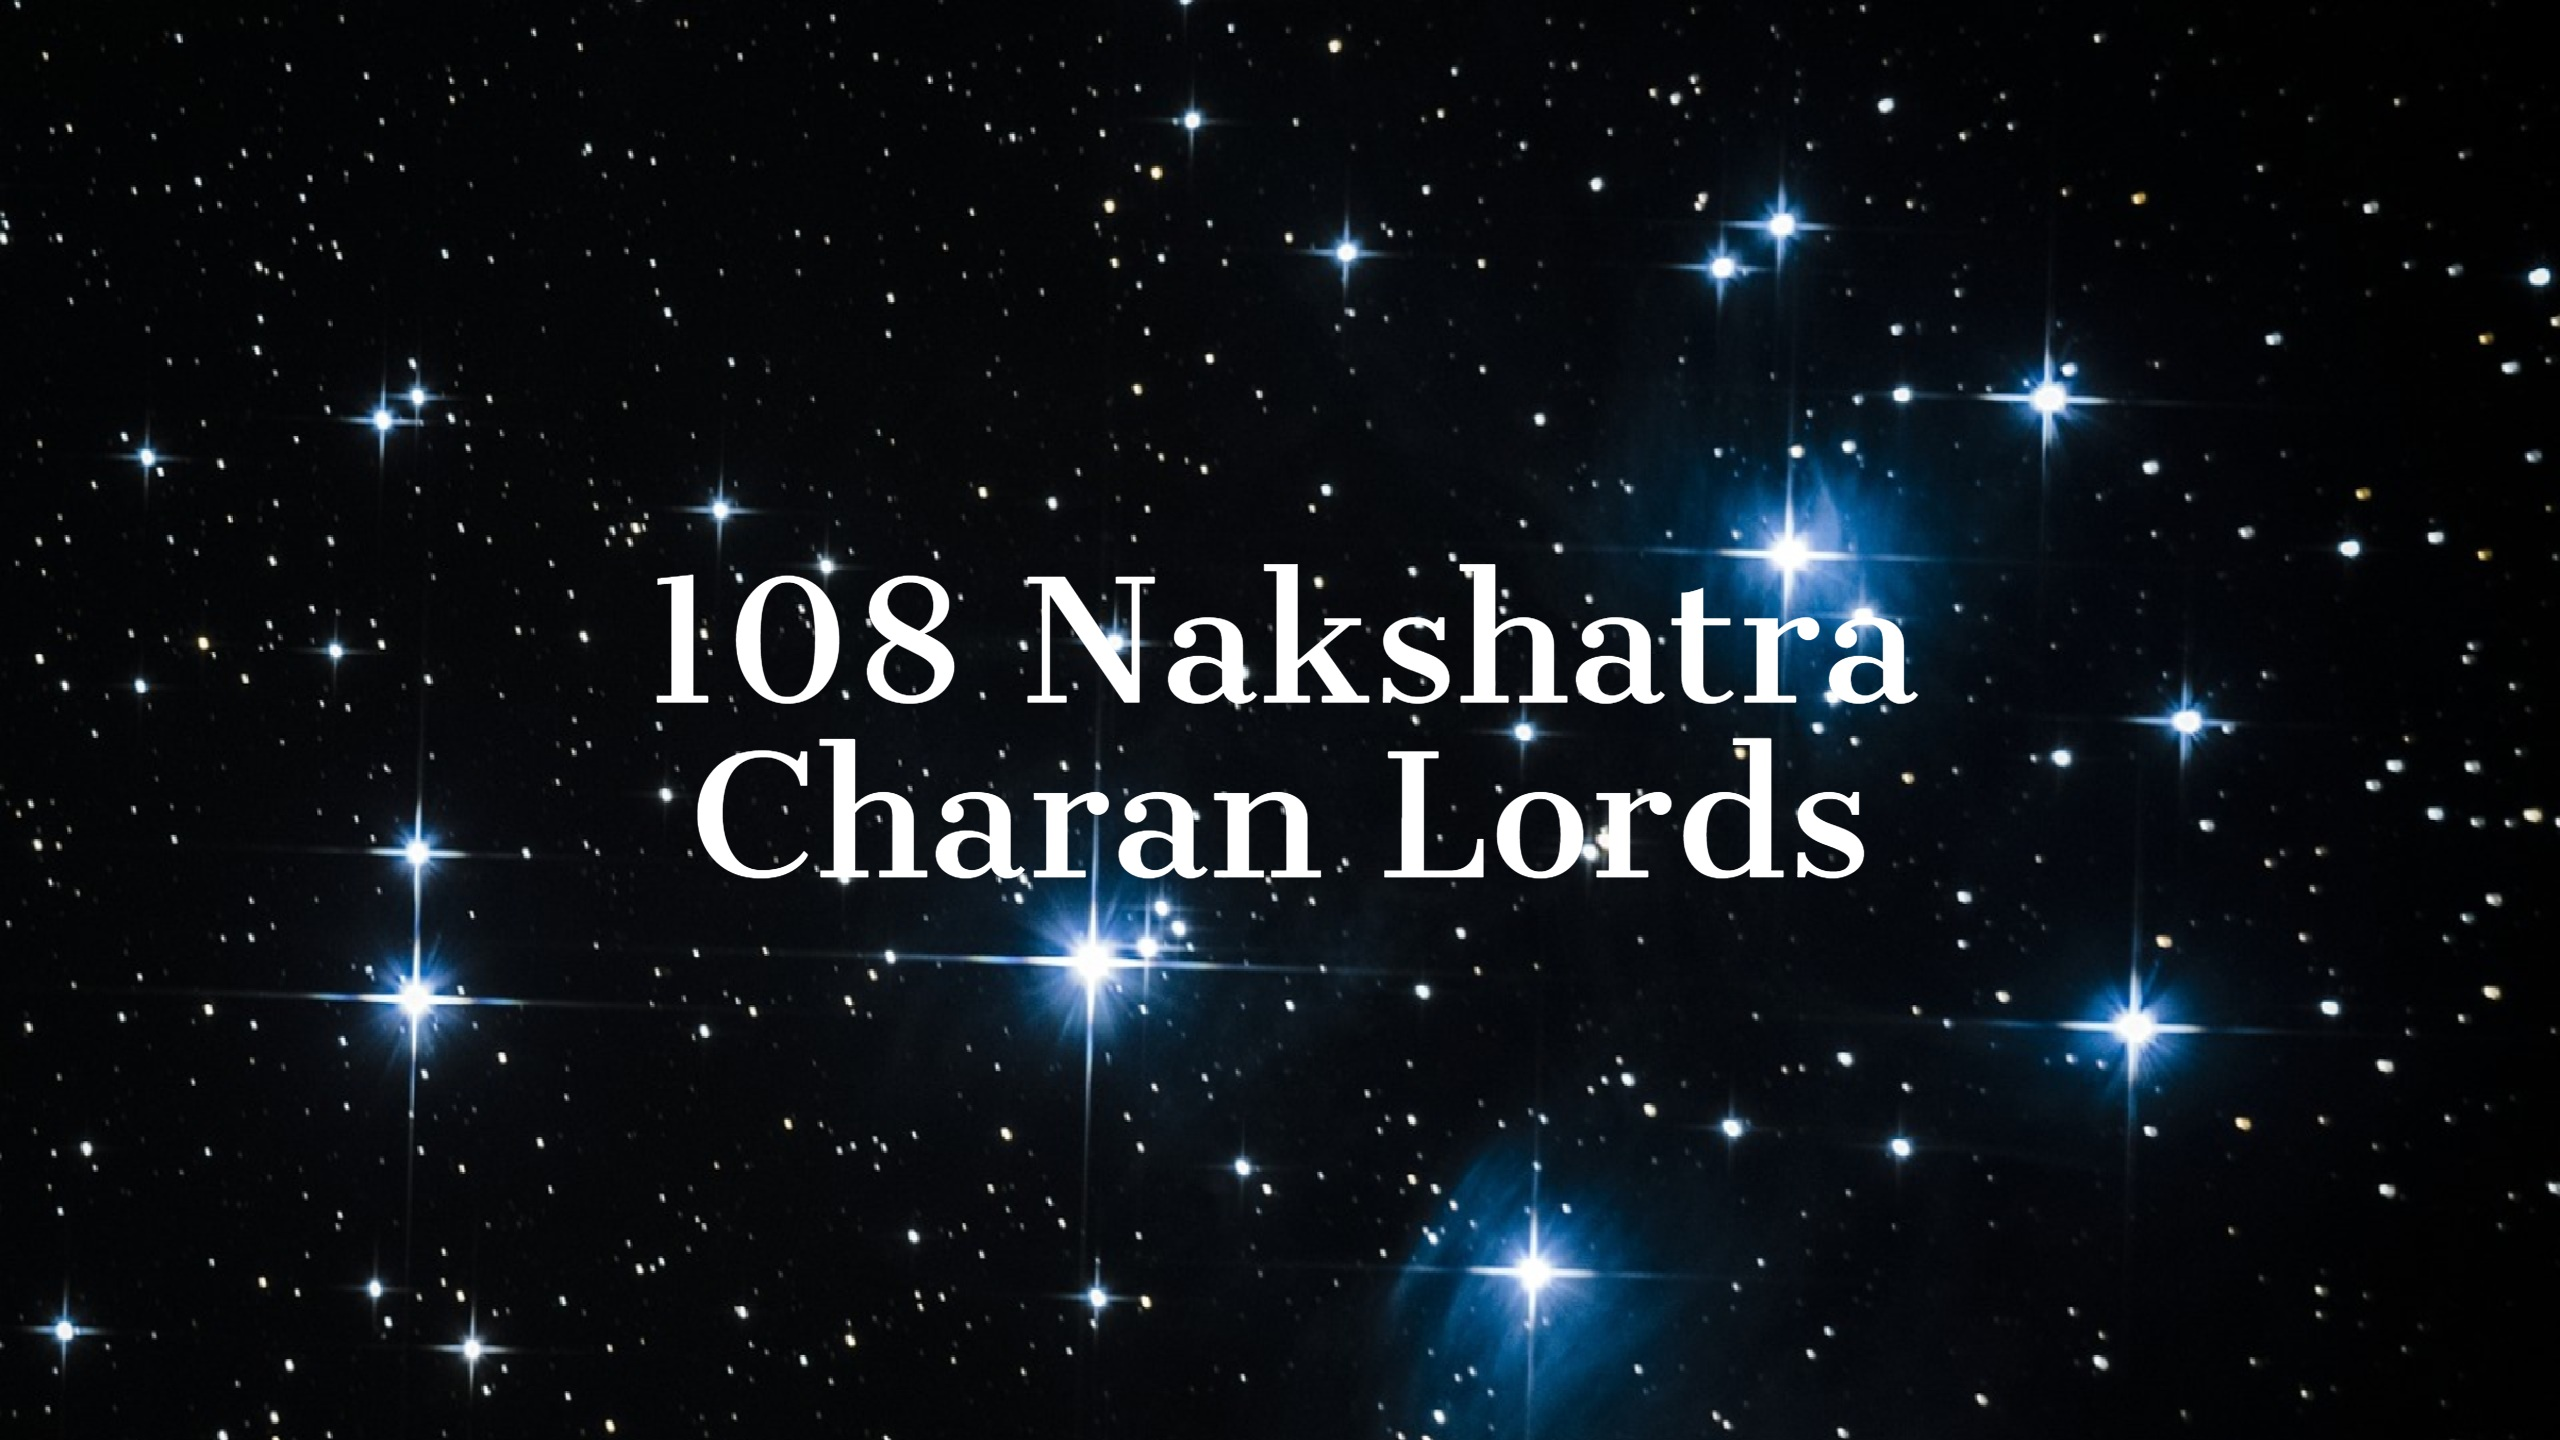 108 Nakshatra Charan Lords in Astrology